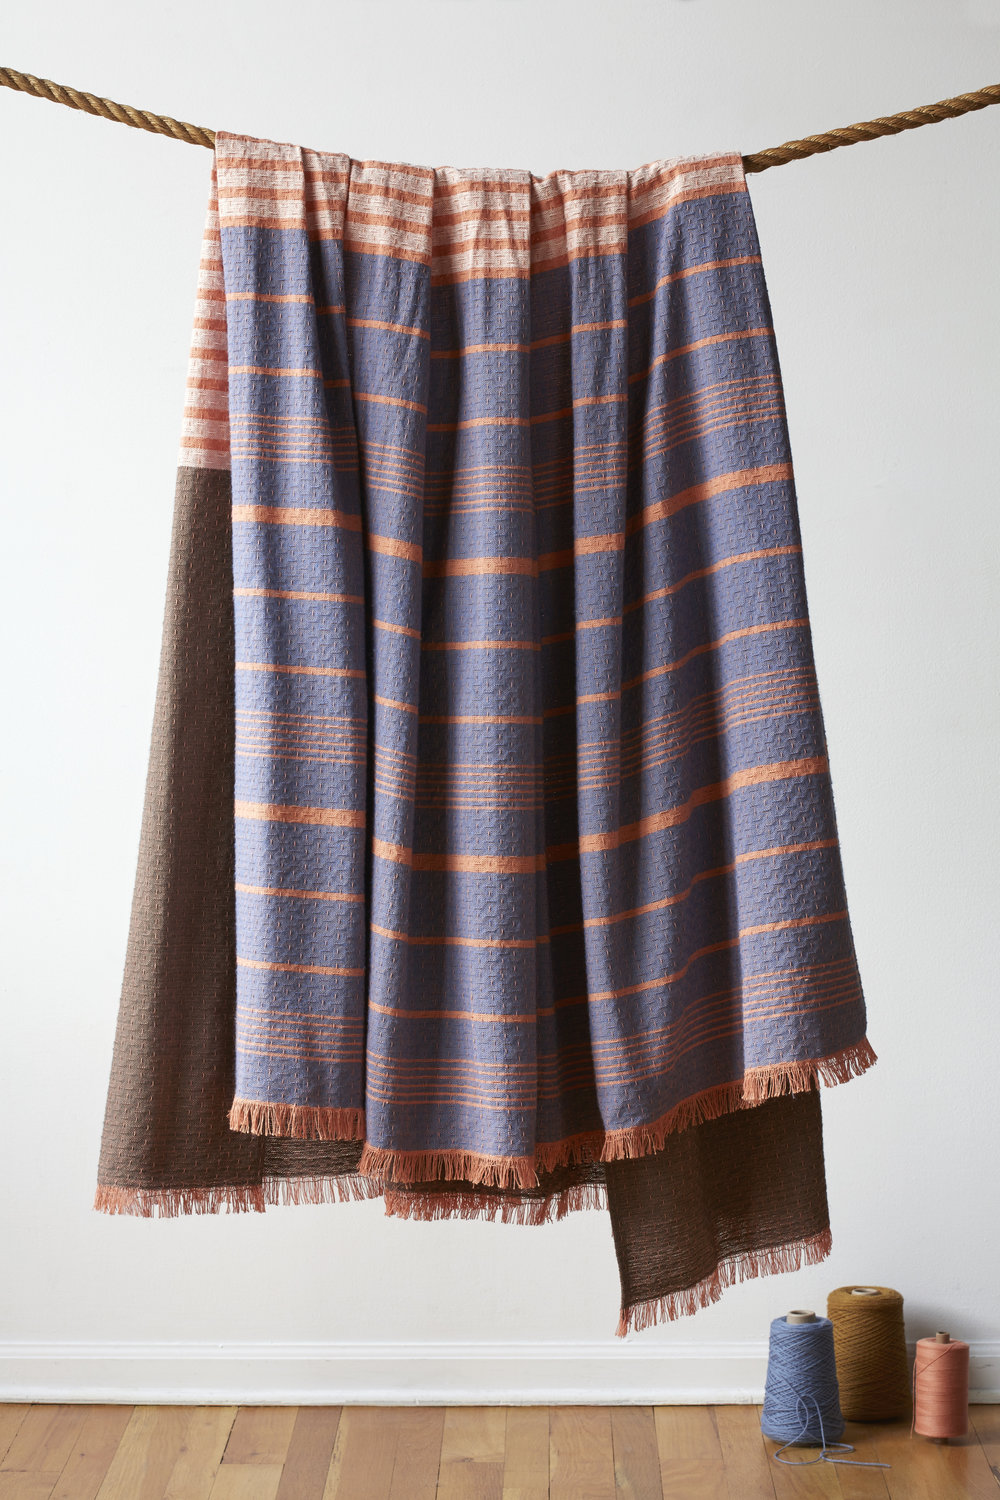 Sunset Blanket in Coral (Low Res).jpg